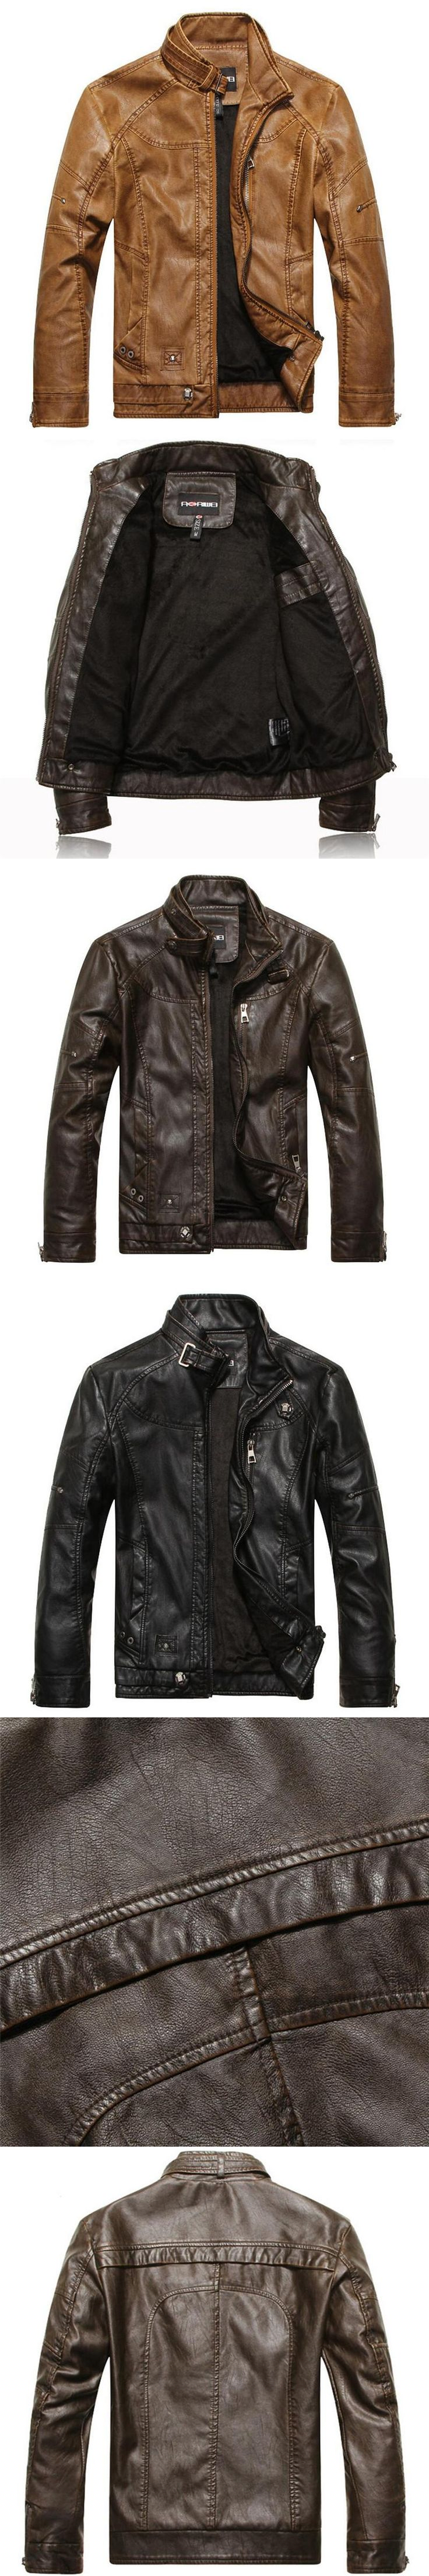 Winter Motorcycle Leather Jacket Men Jaqueta Masculinas Inverno Couro Male Business Casual Bomber Men's Faux Leather Jacket Coat